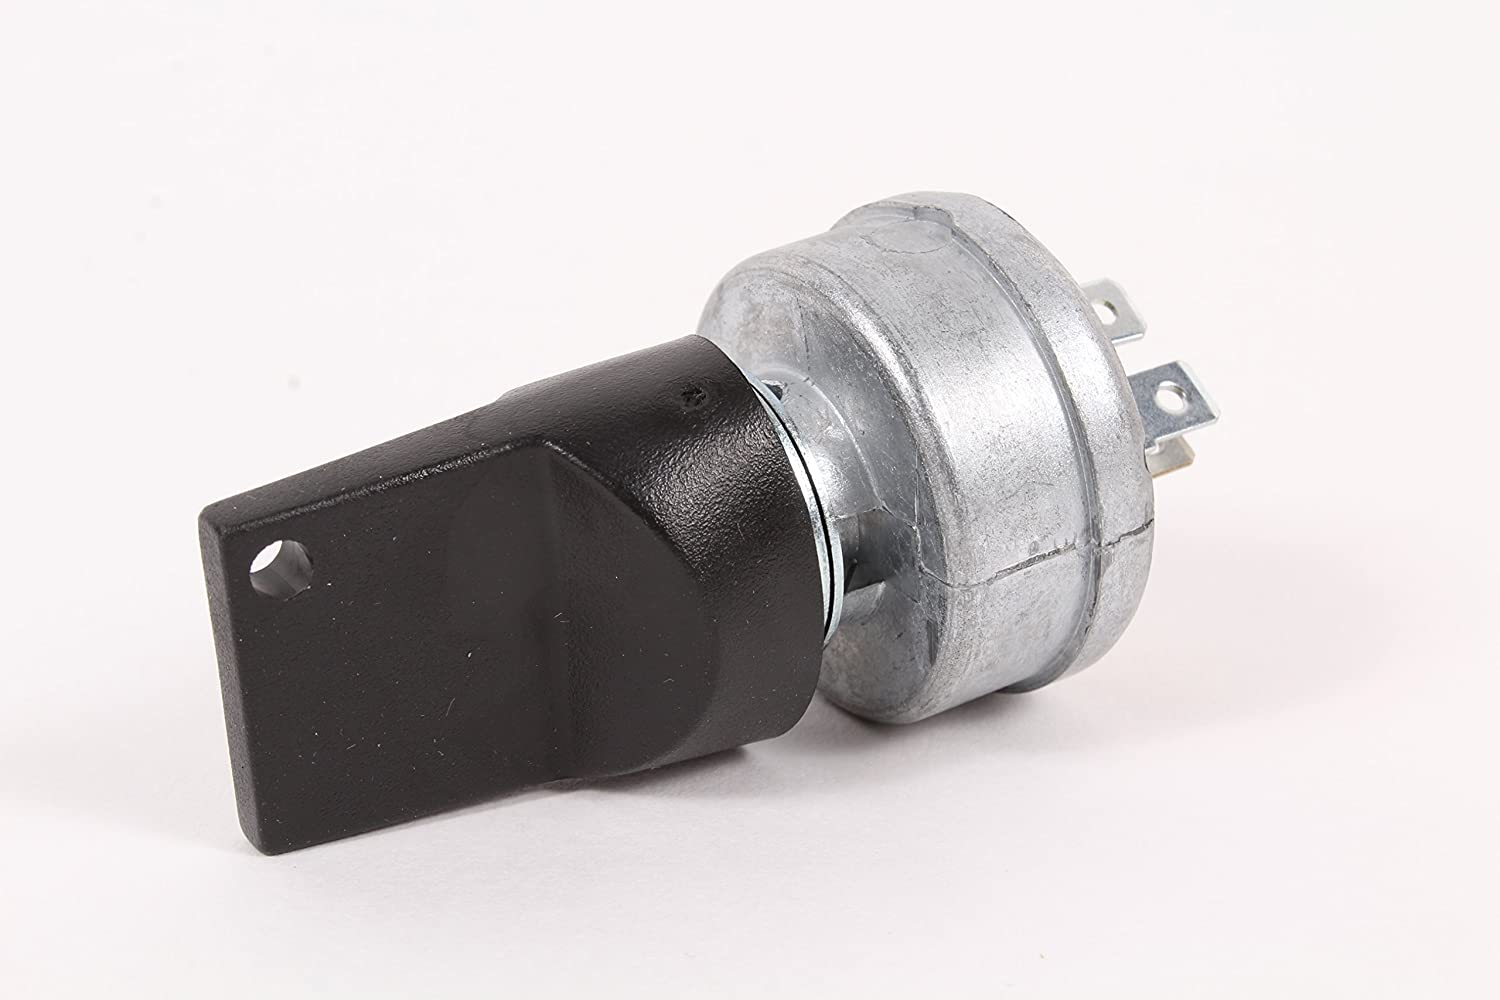 Keyed Alike Details about  /0379902 Ignition Switch for Hyster New Free shipping